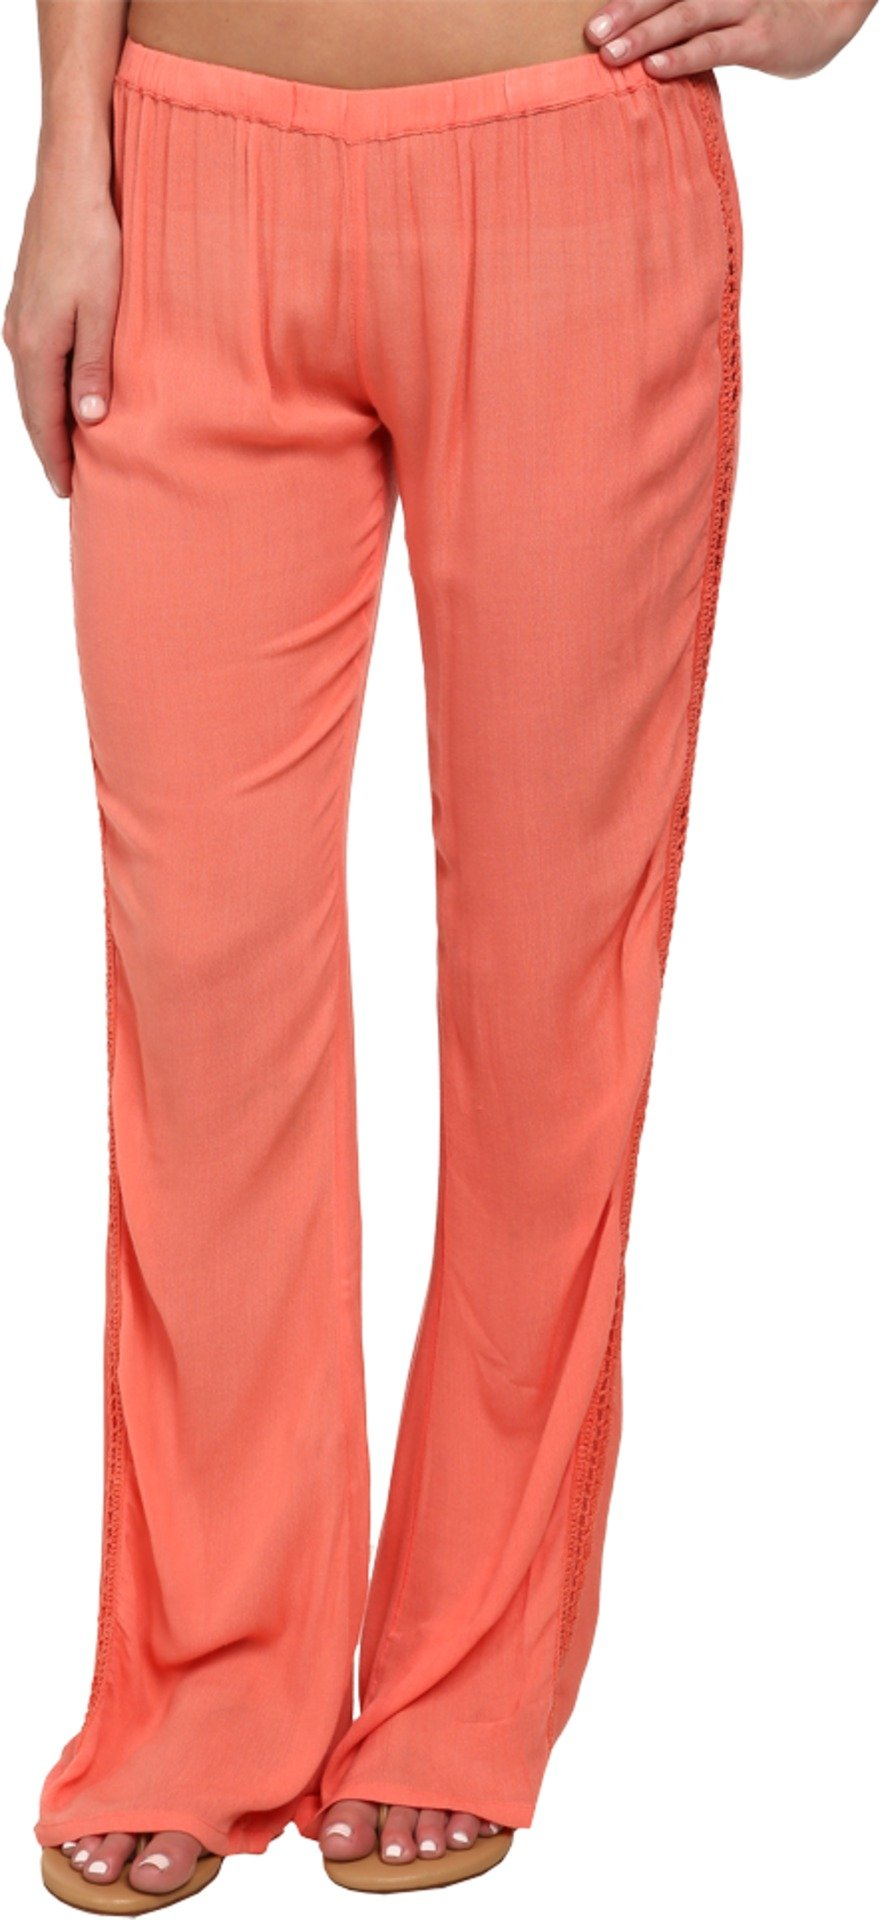 Rip Curl Women's Earth Angel Pants Hot Coral X-Large 33 33